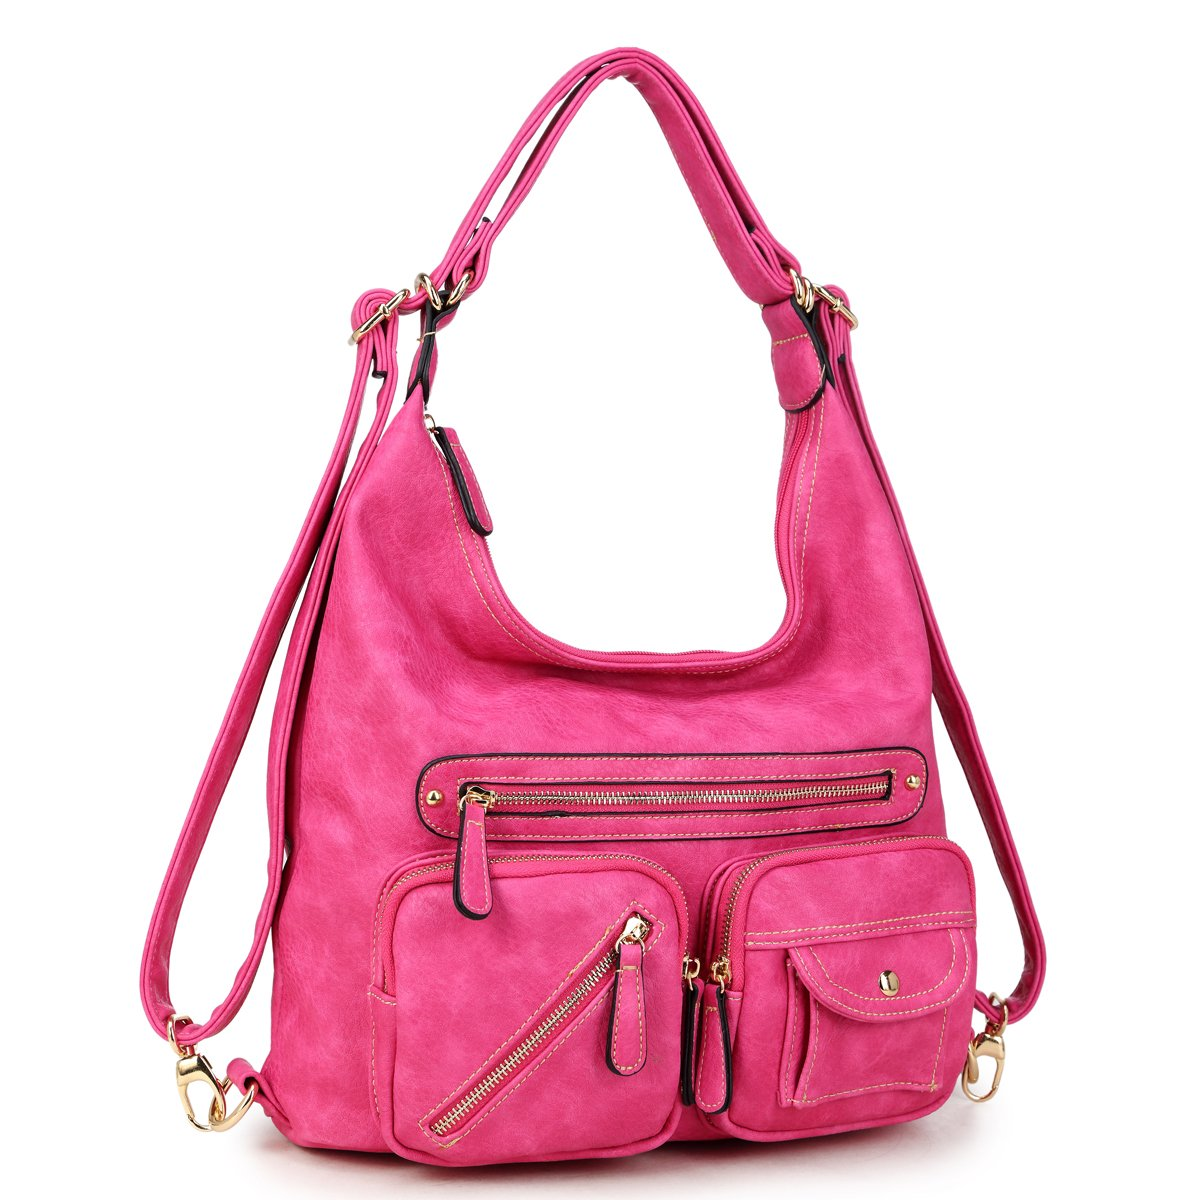 Women Large Hobo Tote Bag Leather Shoulder Bag Ladies Handbags Zipper Pockets Hot Pink